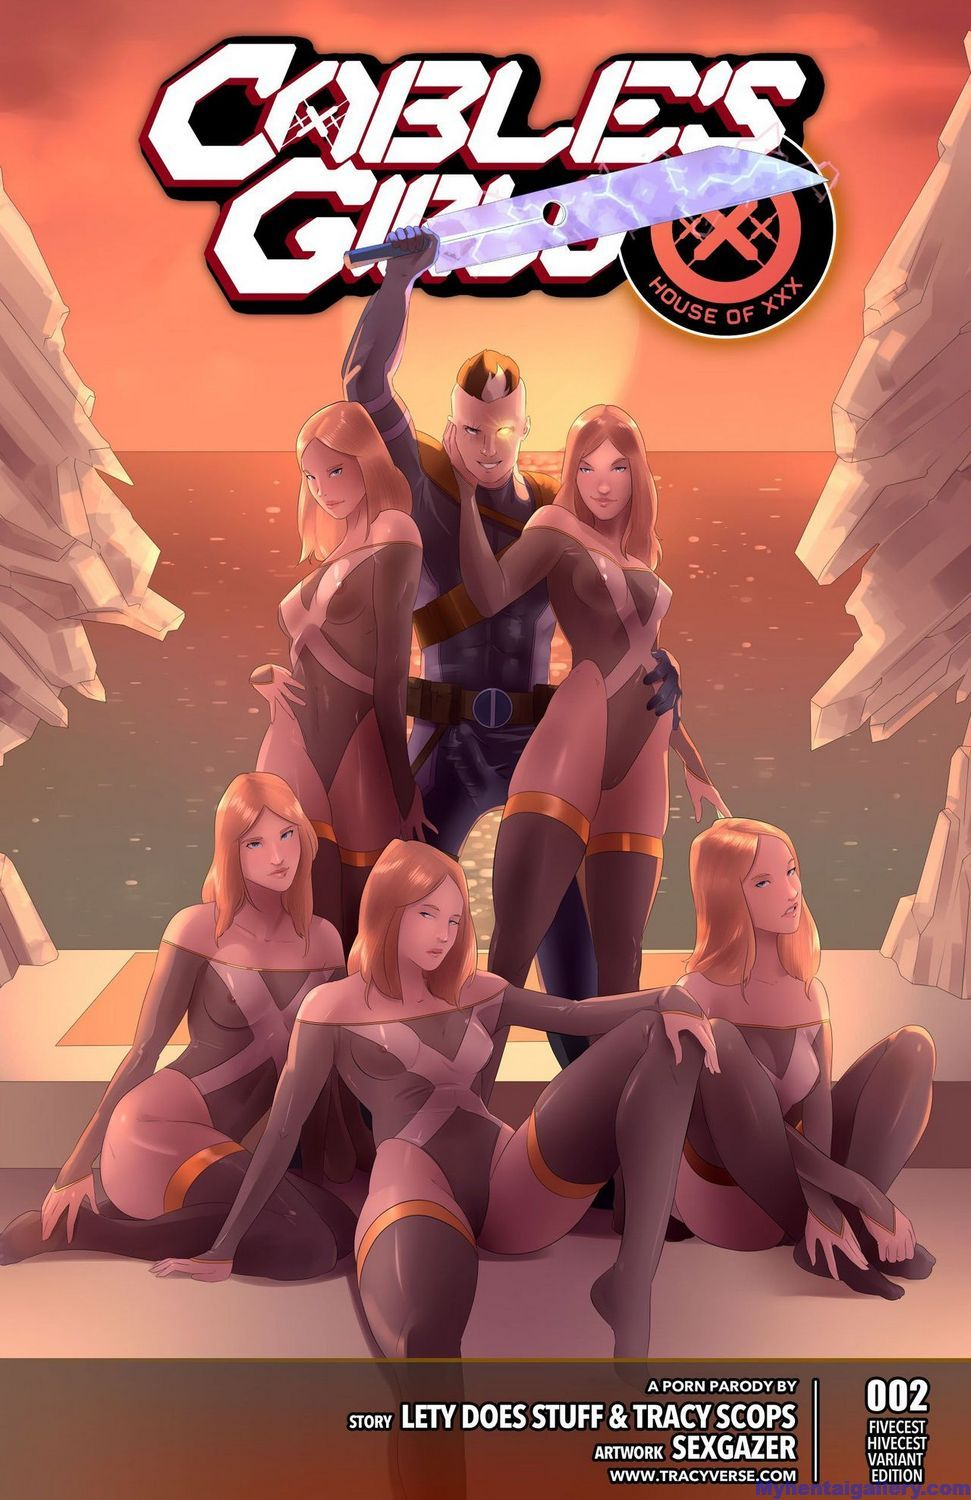 House Of XXX - Cable's Girls 2